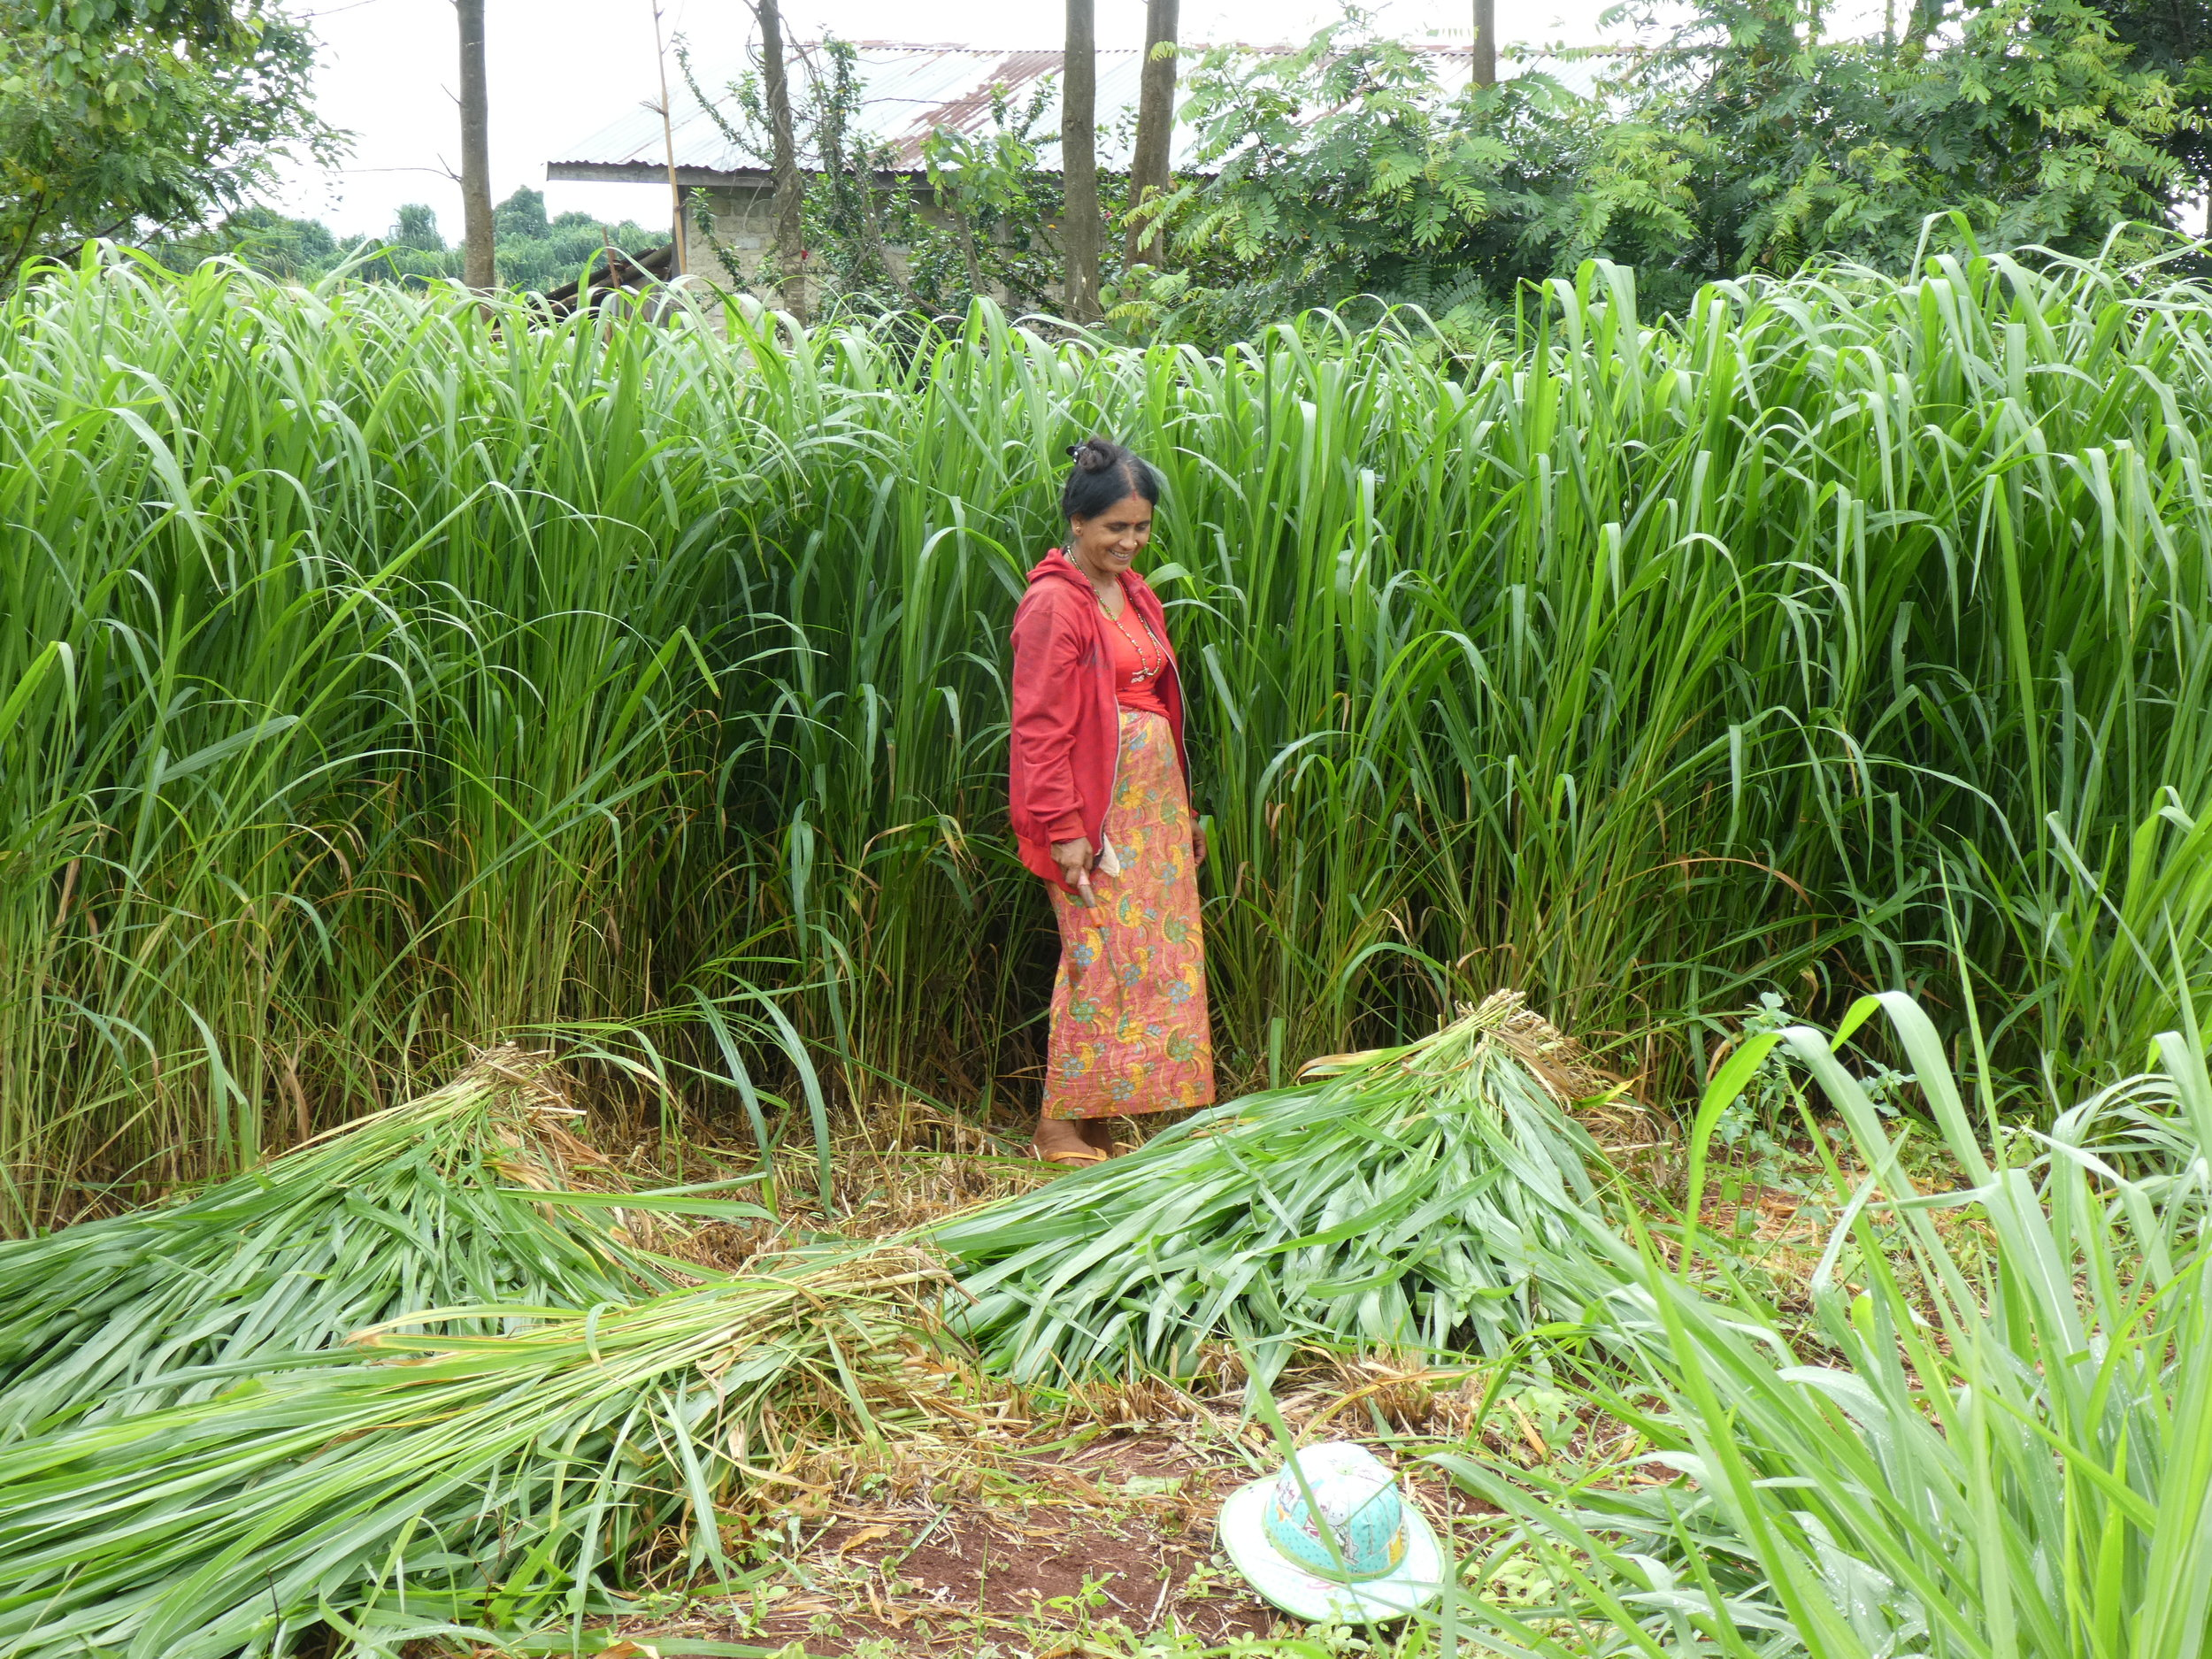 A farmer harvesting her new stand of Mombasa grass